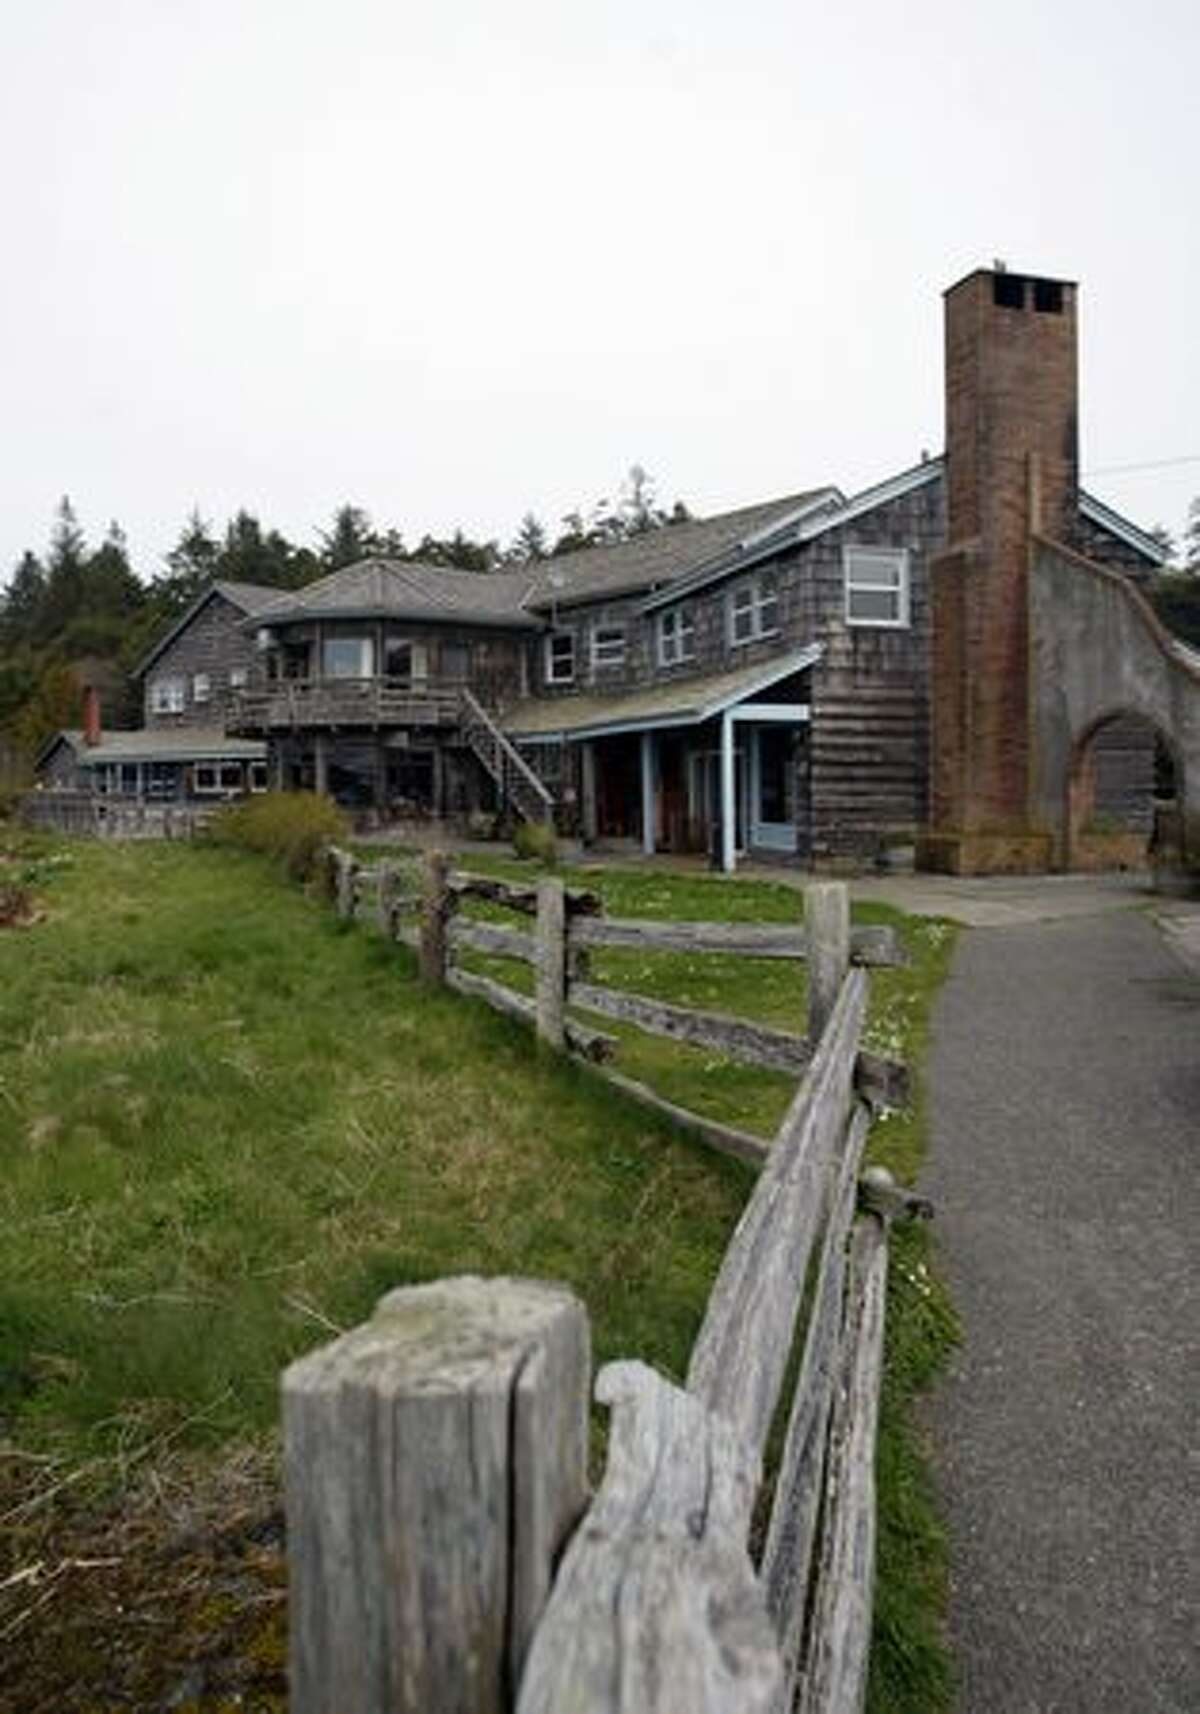 Kalaloch Lodge, perched on a bluff above the